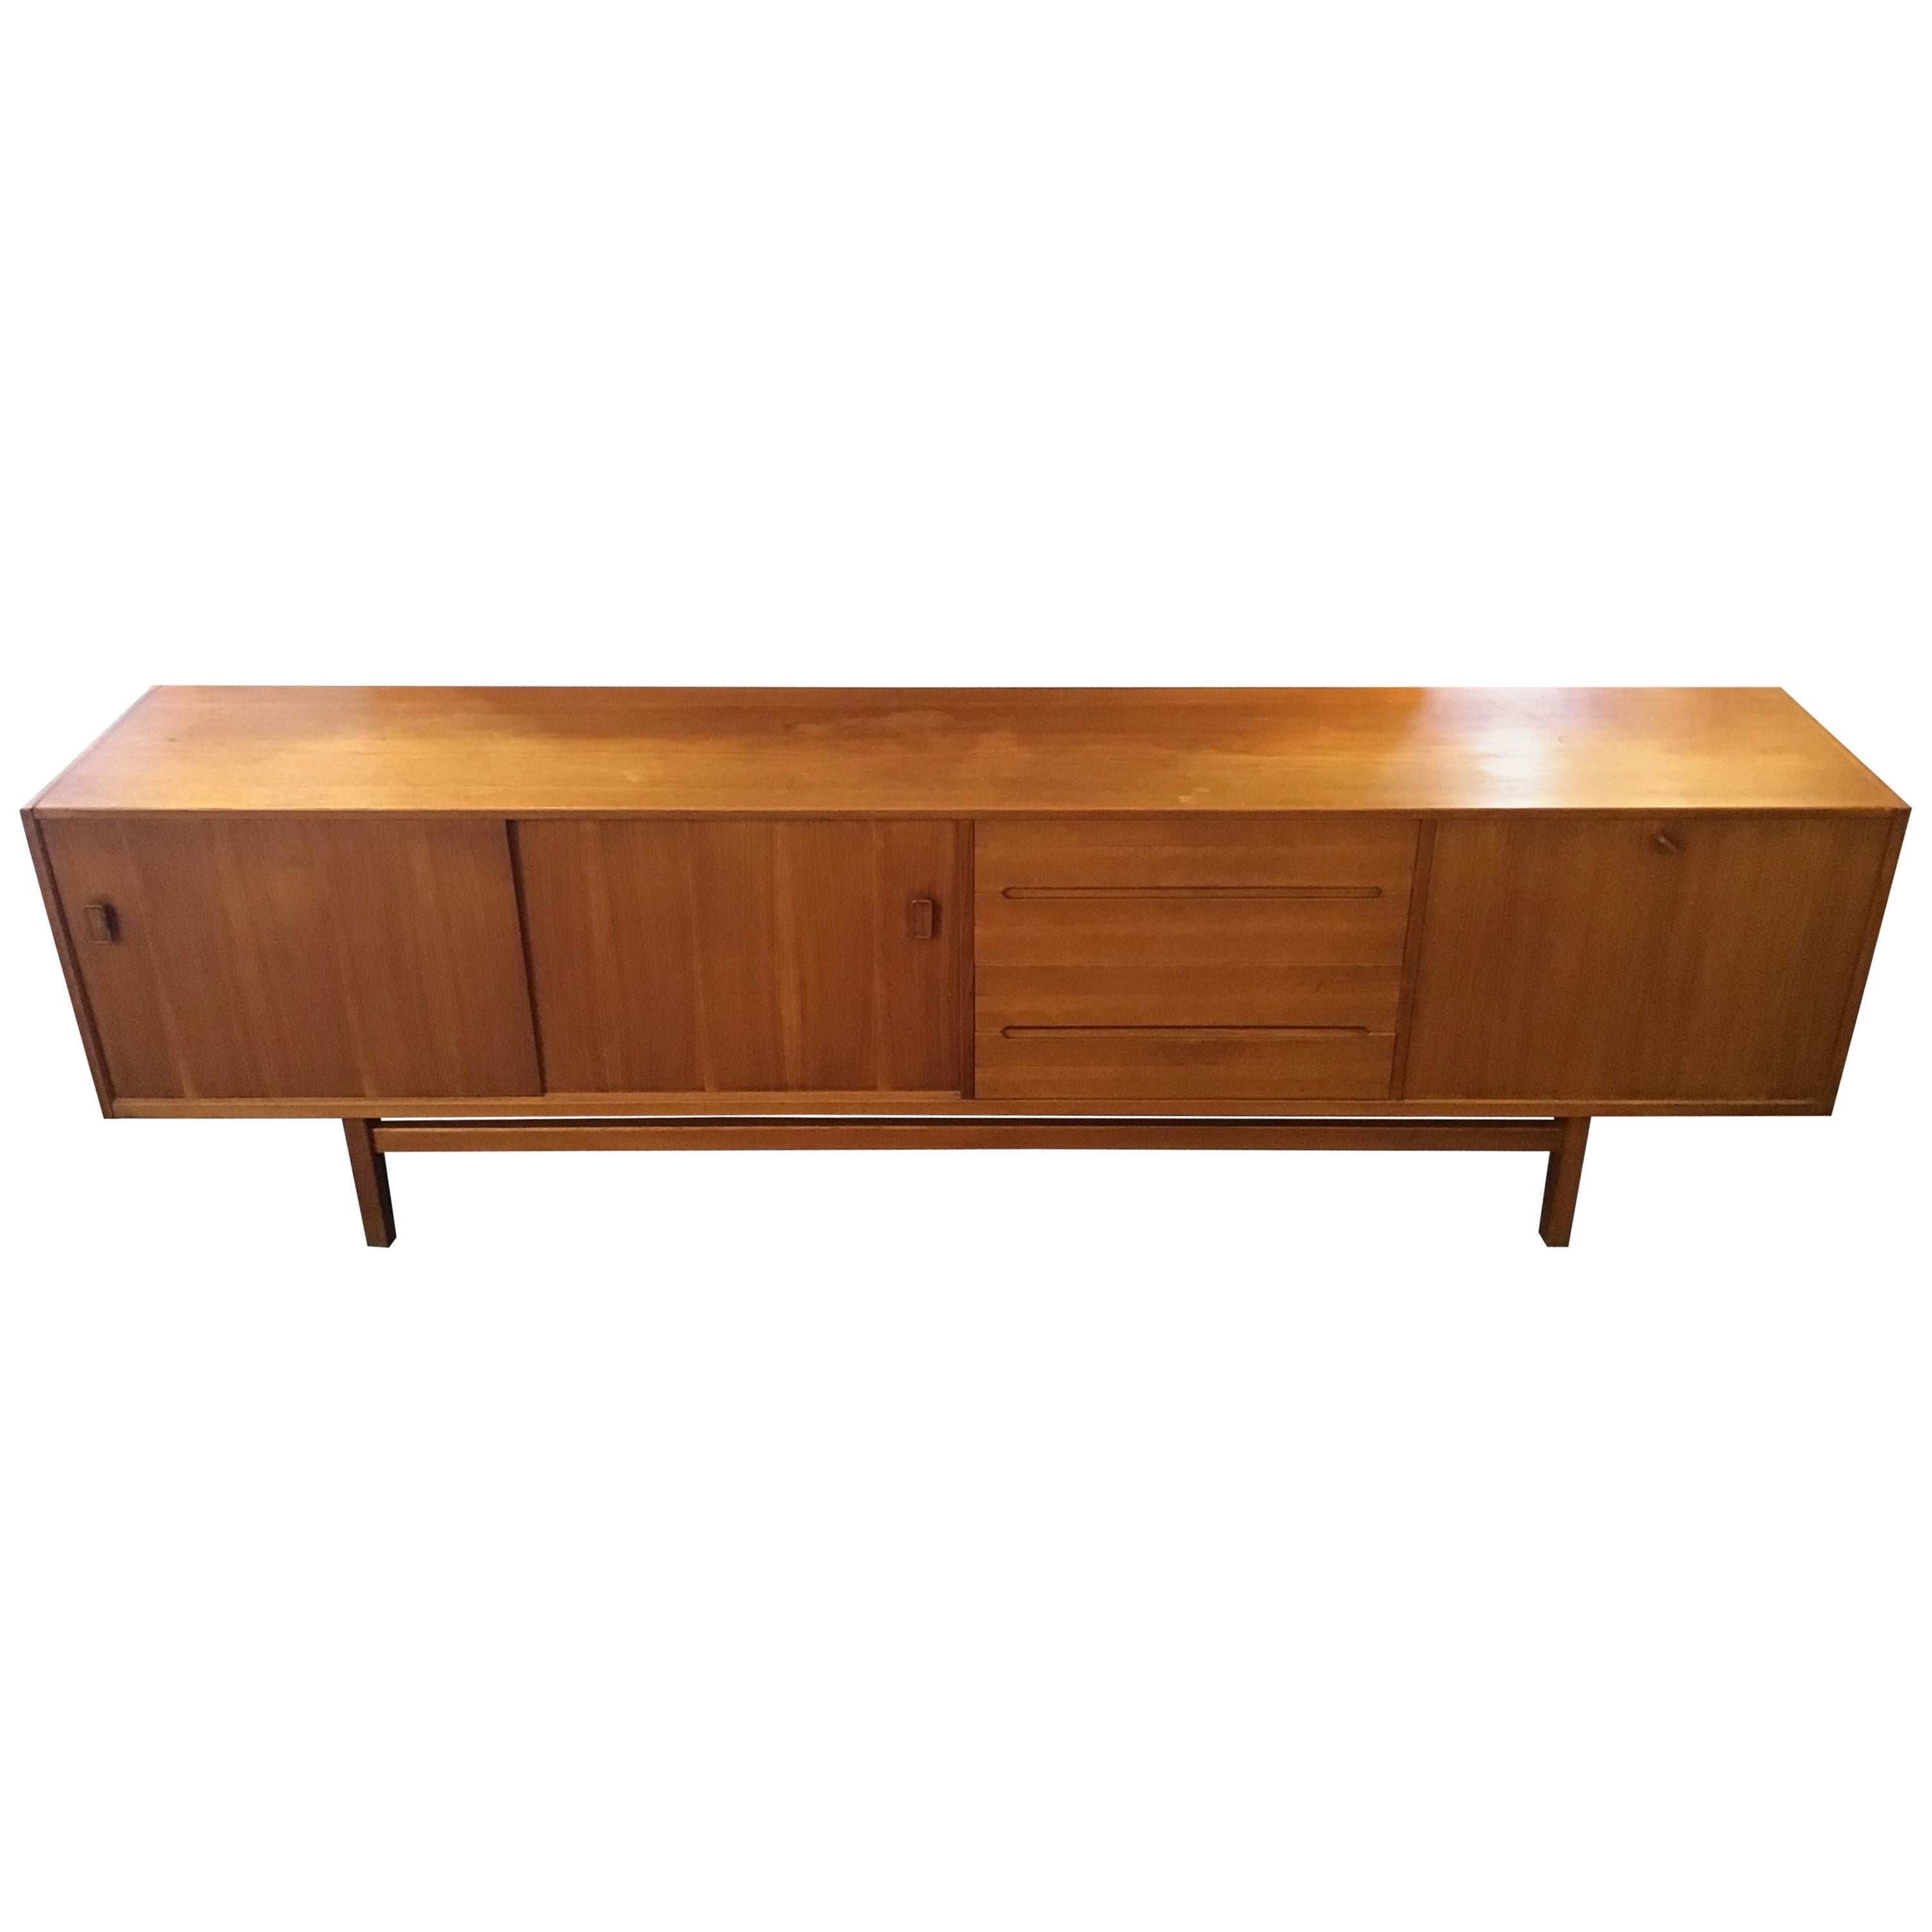 1960s Nils Jonsson Sideboard for Troeds